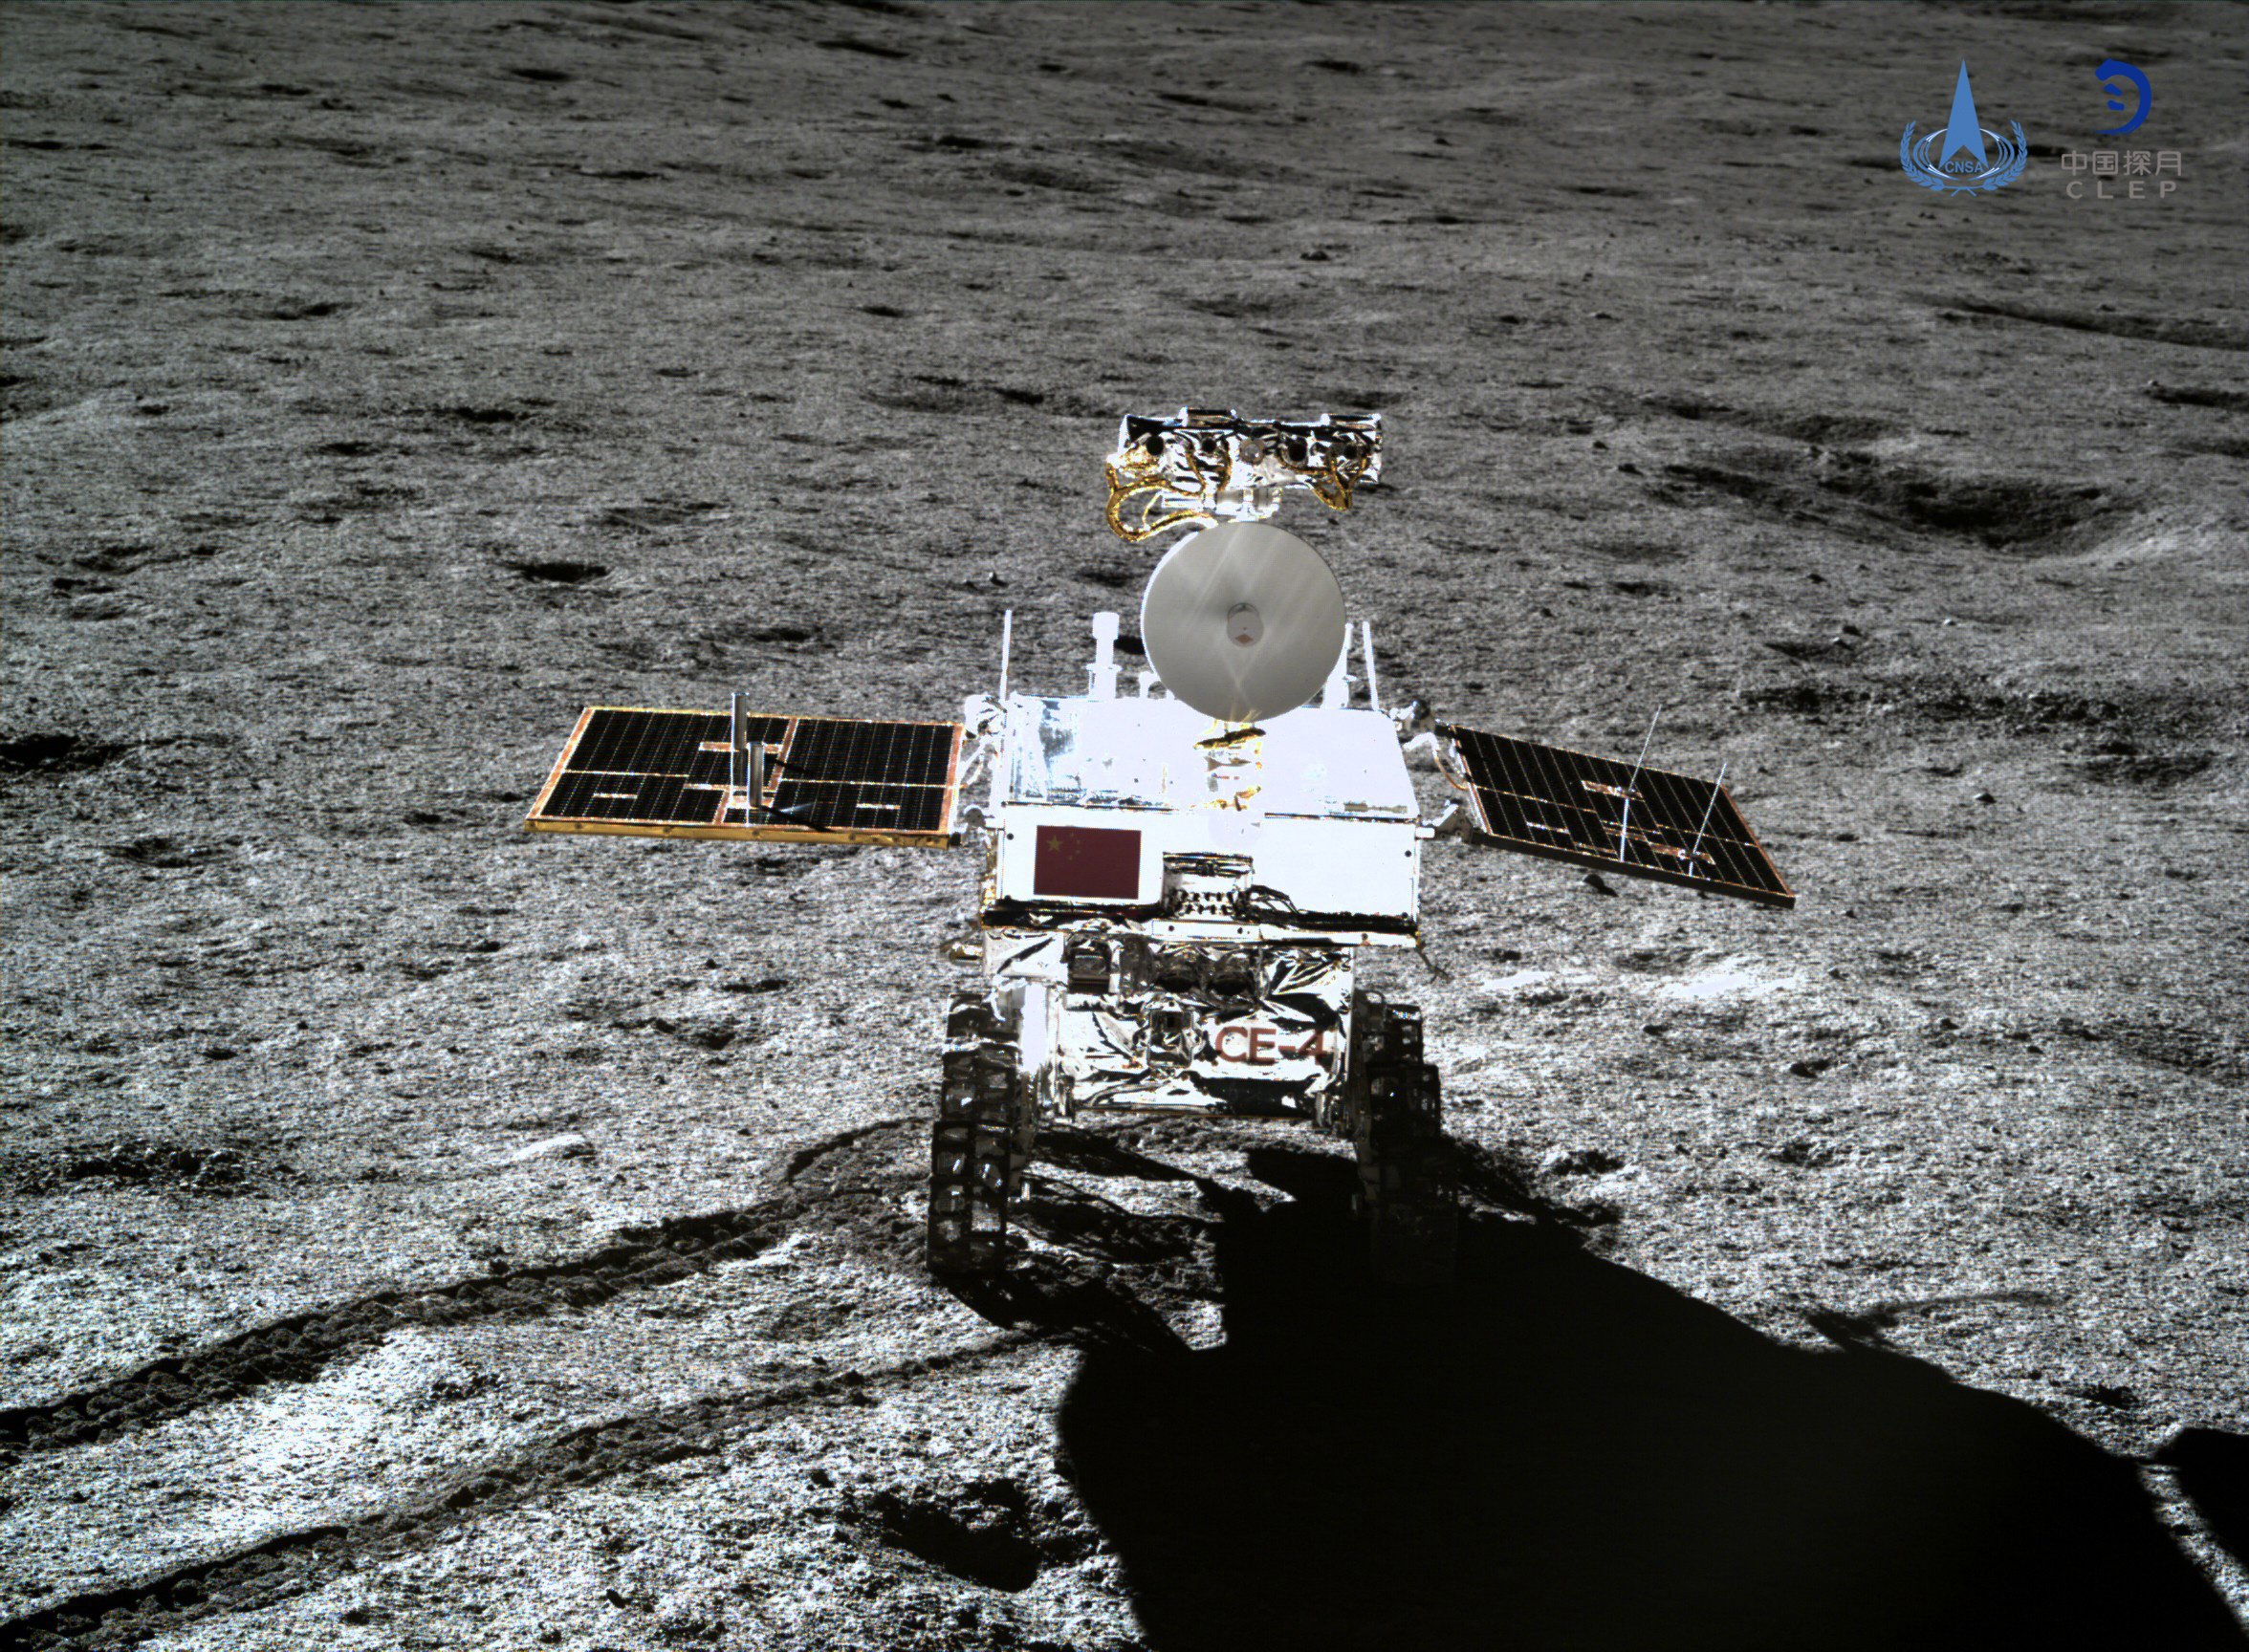 epa07276847 A handout photo made available by the China National Space Administration (CNSA) shows an image of the lunar rover Yutu-2, or Jade Rabbit 2, taken with the Chang'e 4 lander's terrain camera on the far side of the moon on 11 January 2019 (issued 12 January 2018). China announced on 11 January 2019 that the Chang'e 4 mission, which realized the first-ever soft-landing on the far side of the moon, was a complete success. The Chang'e 4 lunar probe made its historic landing on 03 January 2019 at 10:26am Beijing time (0226 GMT). EPA/CNSA / HANDOUT HANDOUT EDITORIAL USE ONLY/NO SALES HANDOUT HANDOUT EDITORIAL USE ONLY/NO SALES